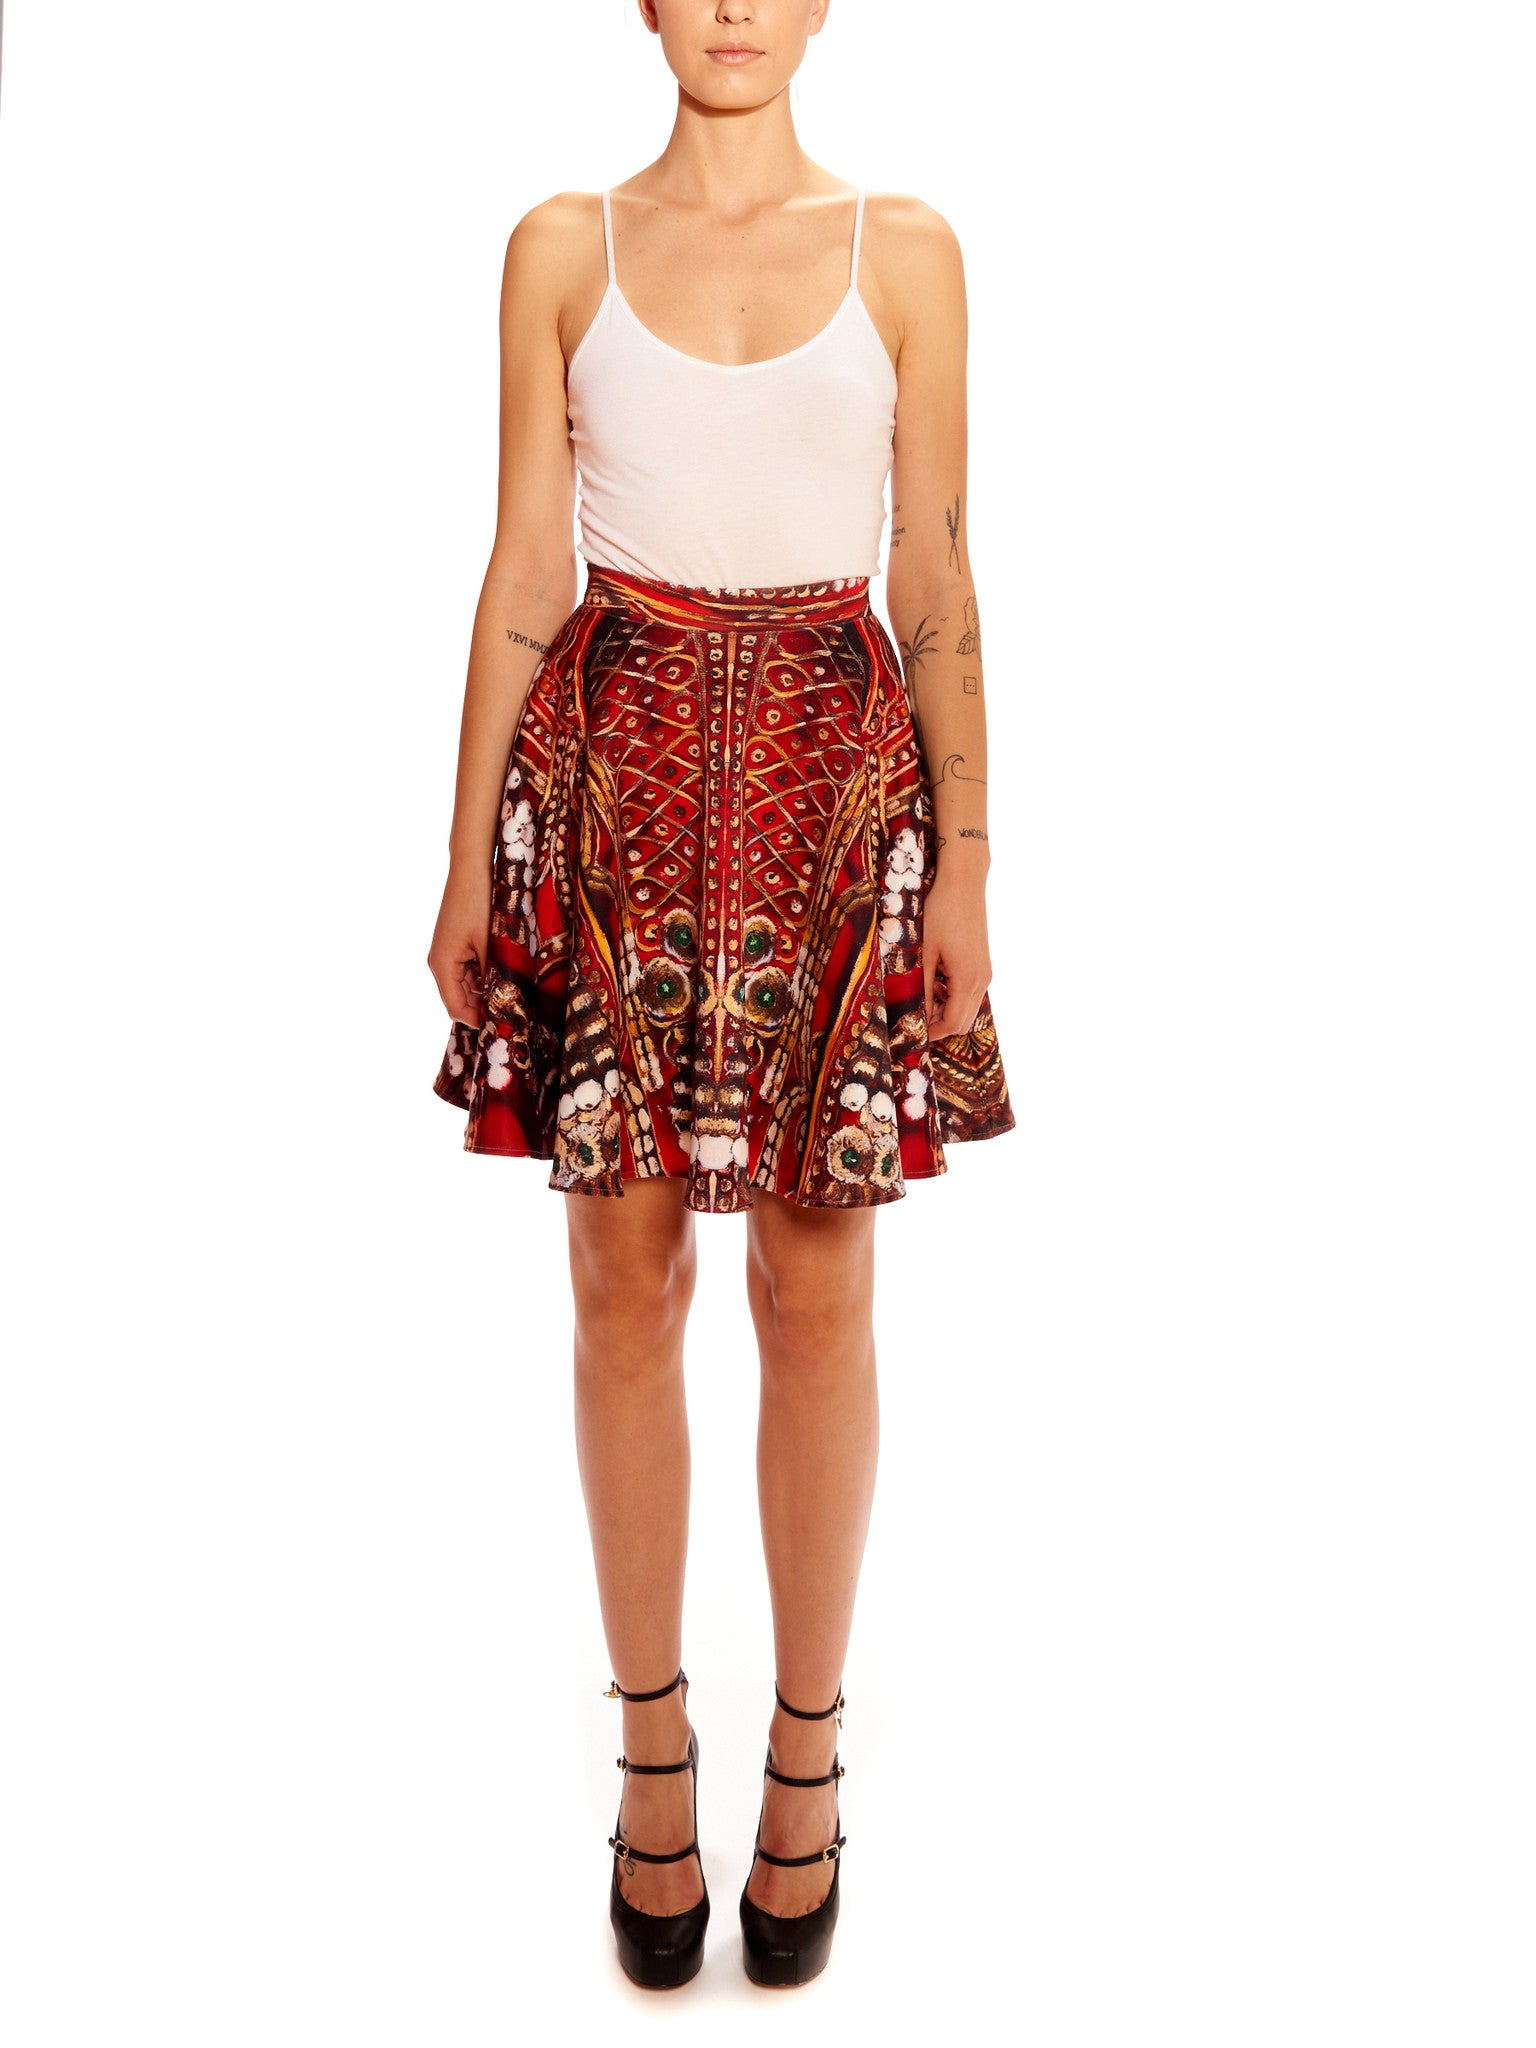 Matador Scuba Circle Skirt - Nuvango Gallery & Goods - 1